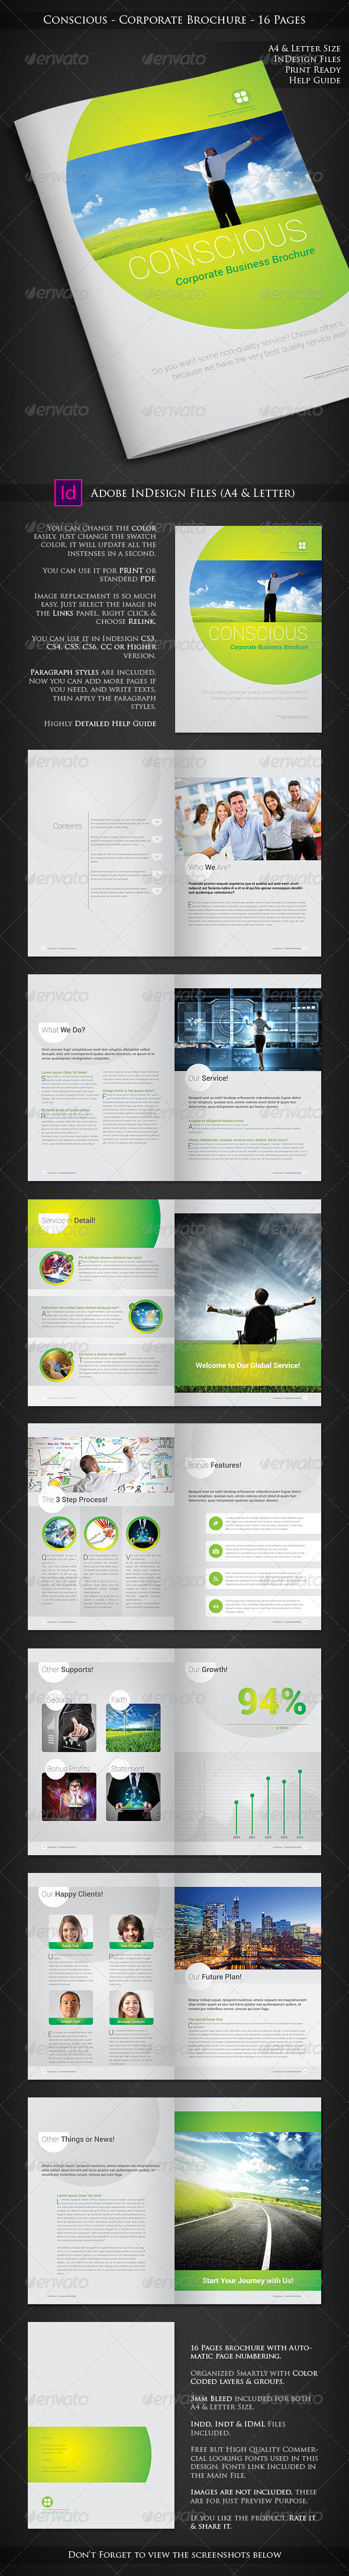 Conscious - Corporate Brochure Design - 16 Pages - Corporate Brochures